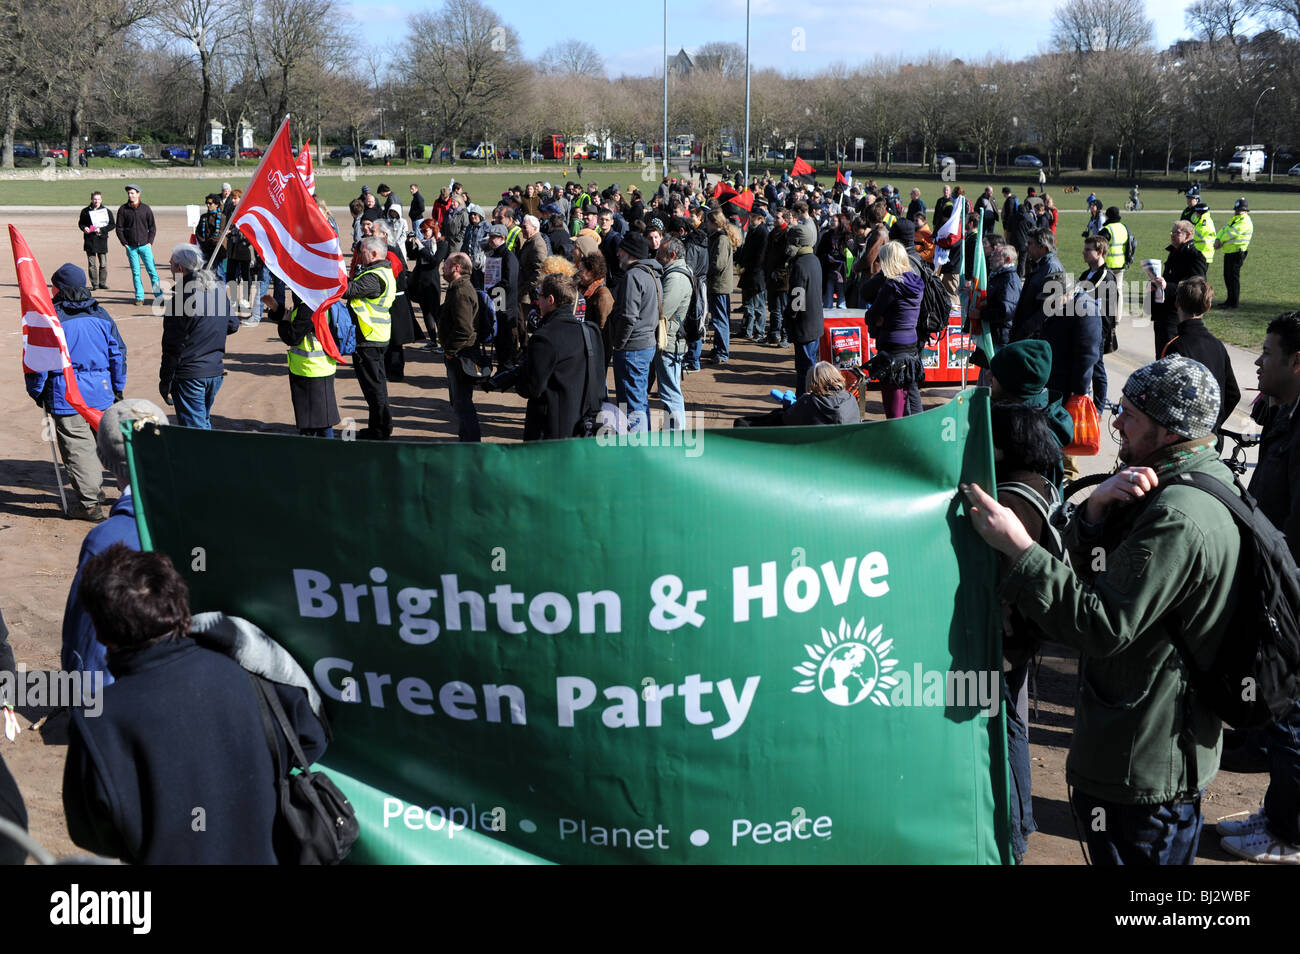 Brighton and Hove Green Party taking part in a demonstration against job losses Stock Photo